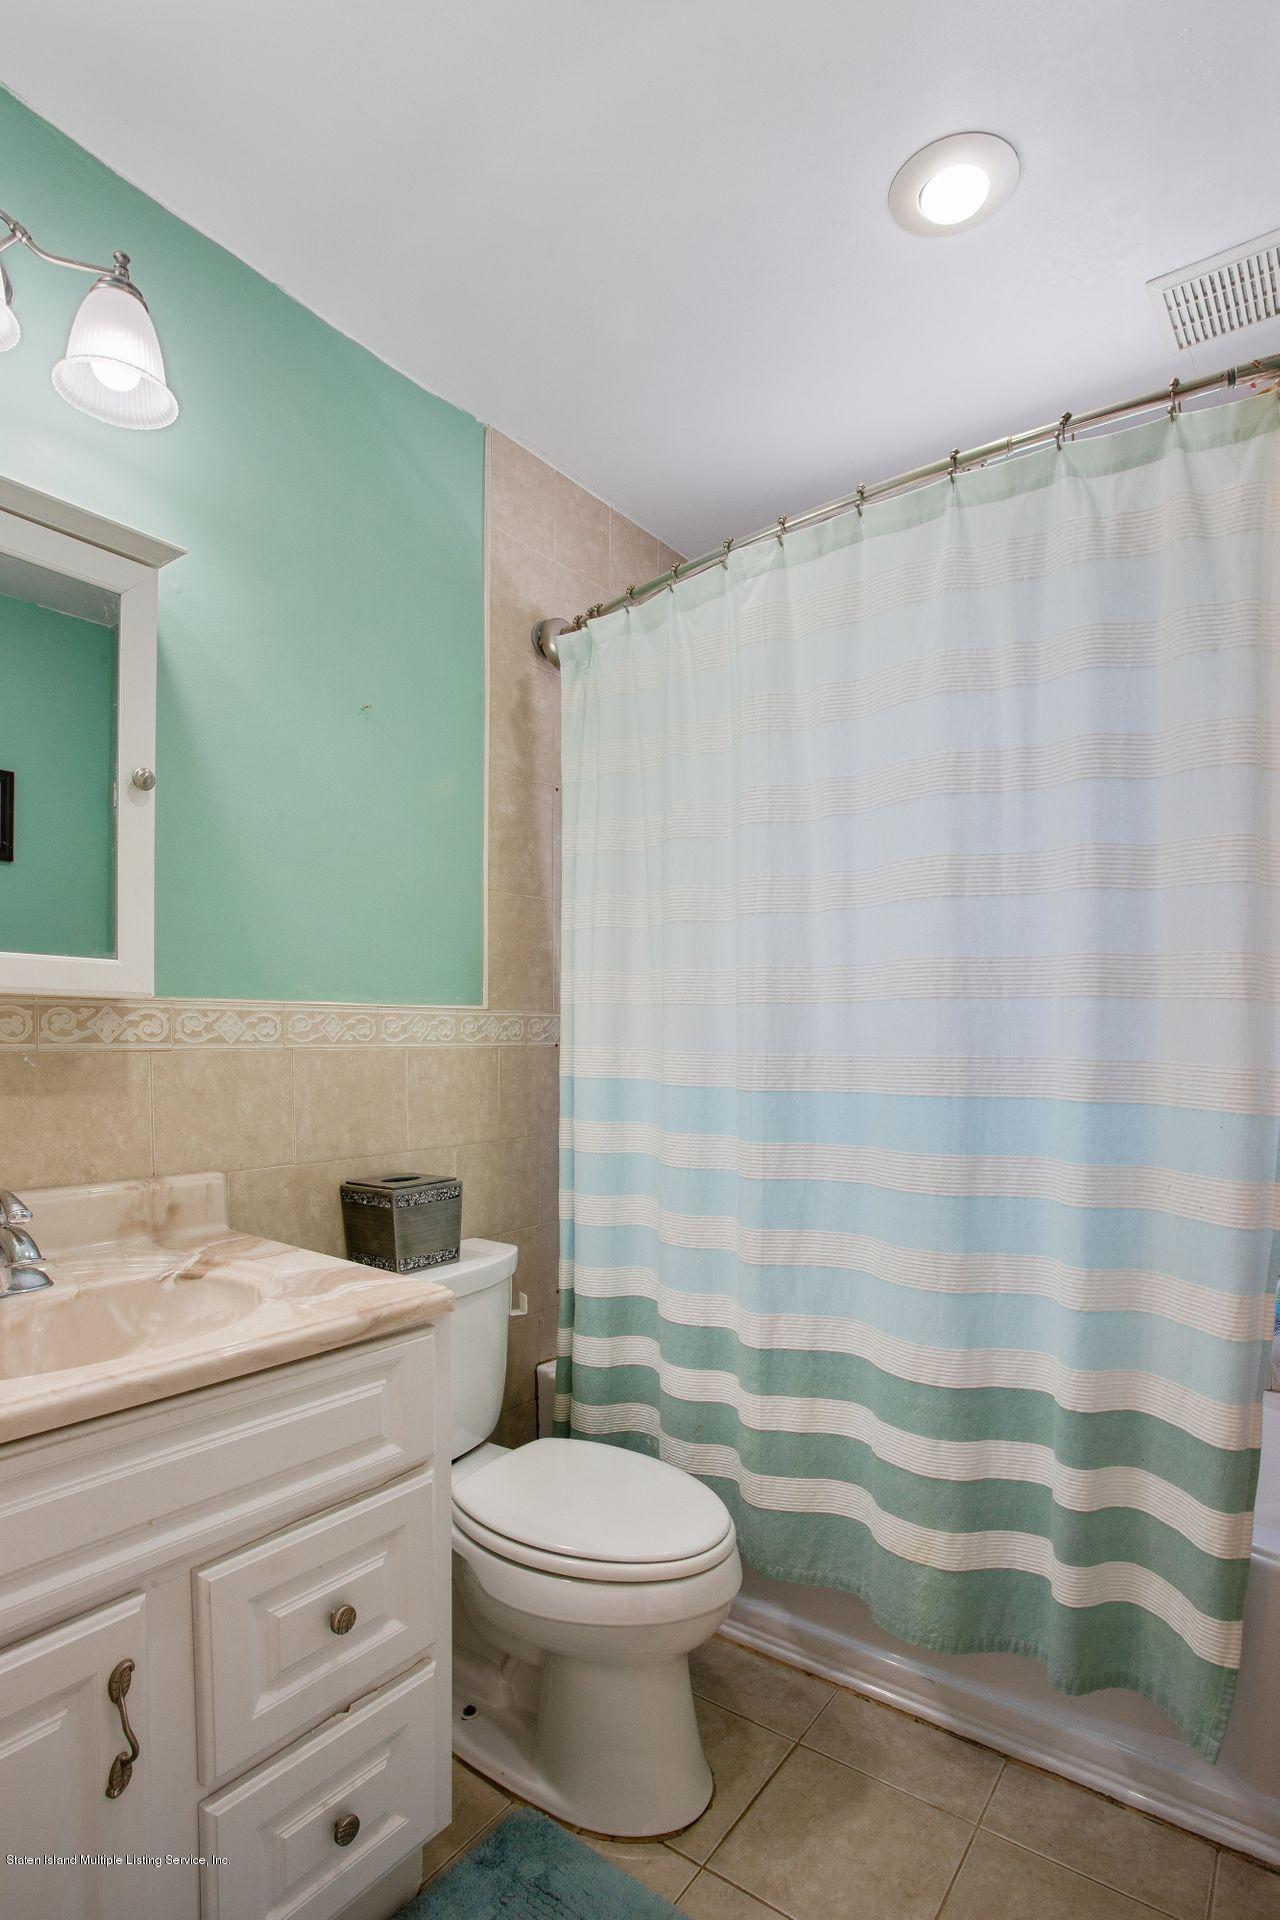 Single Family - Detached 252 Waters Avenue  Staten Island, NY 10314, MLS-1128050-23